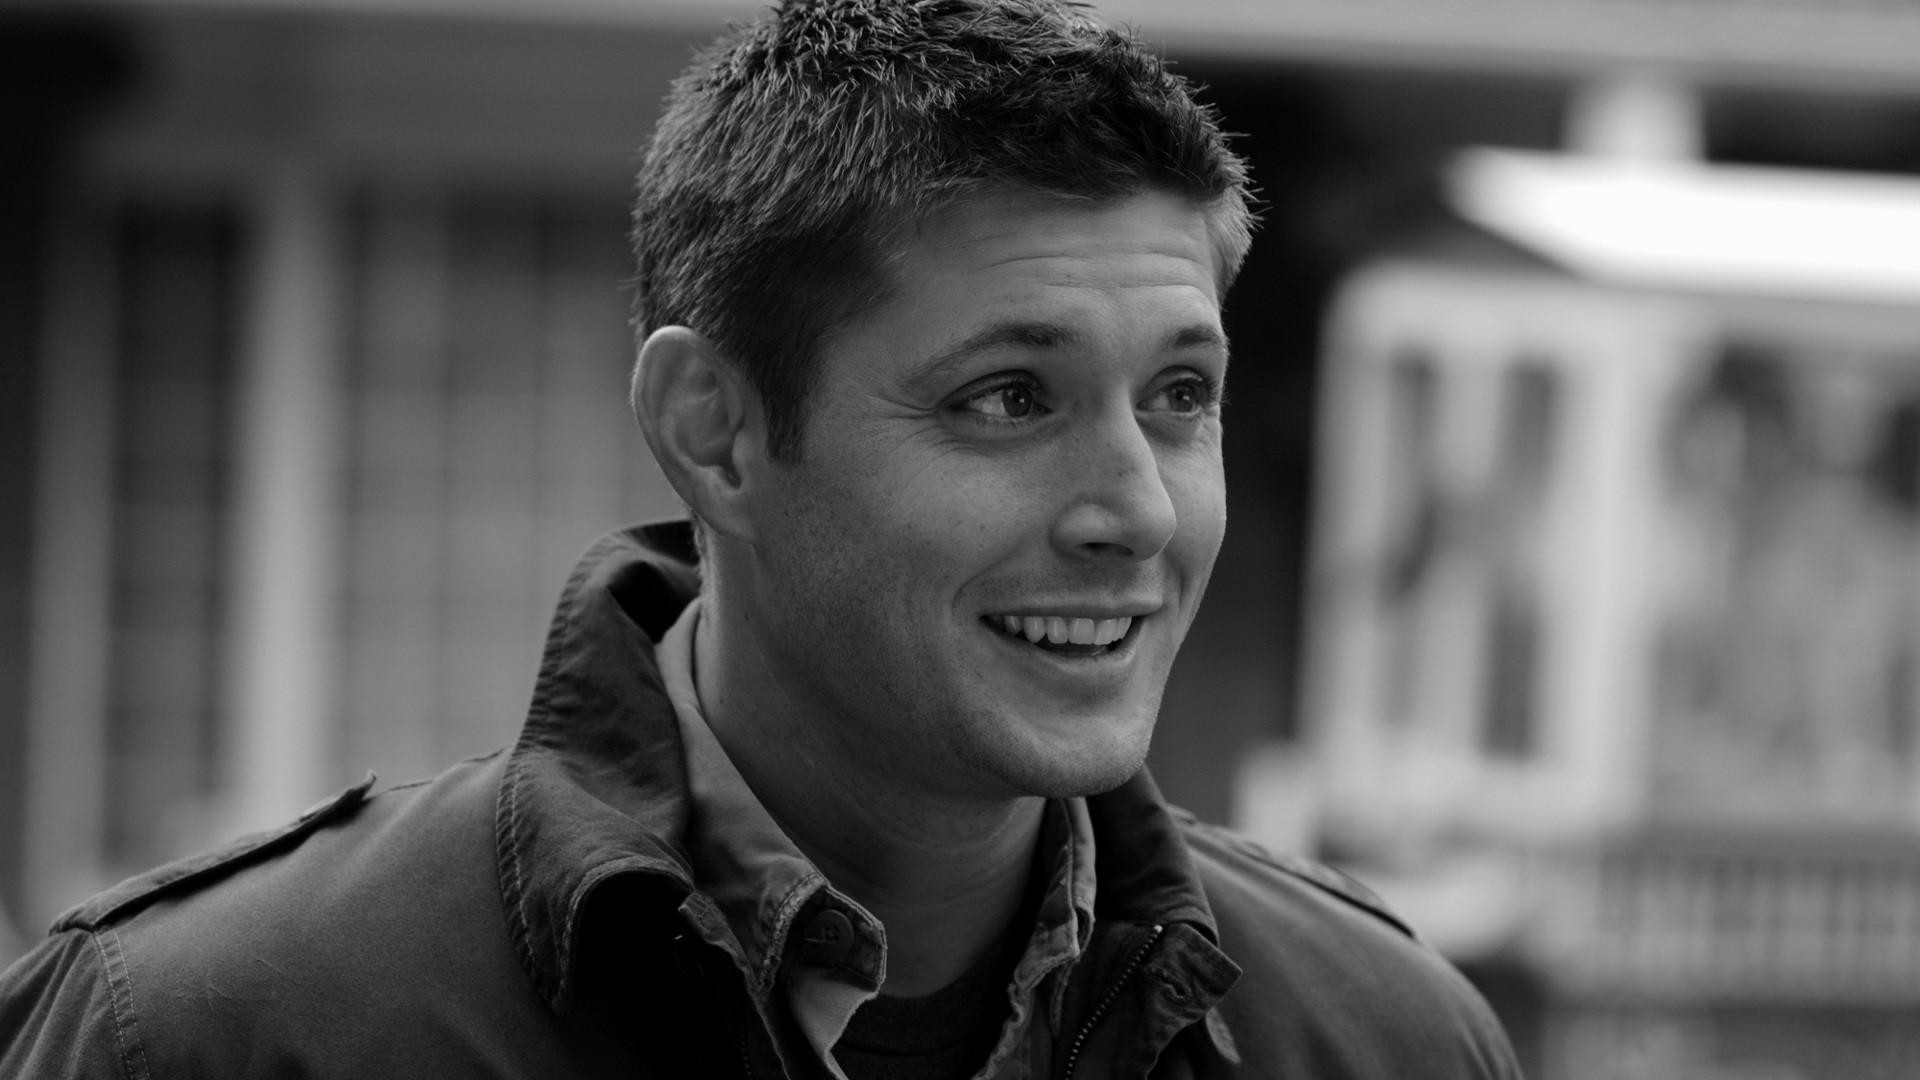 wallpaper.wiki-Free-Dean-Winchester-Photo-PIC-WPB008309